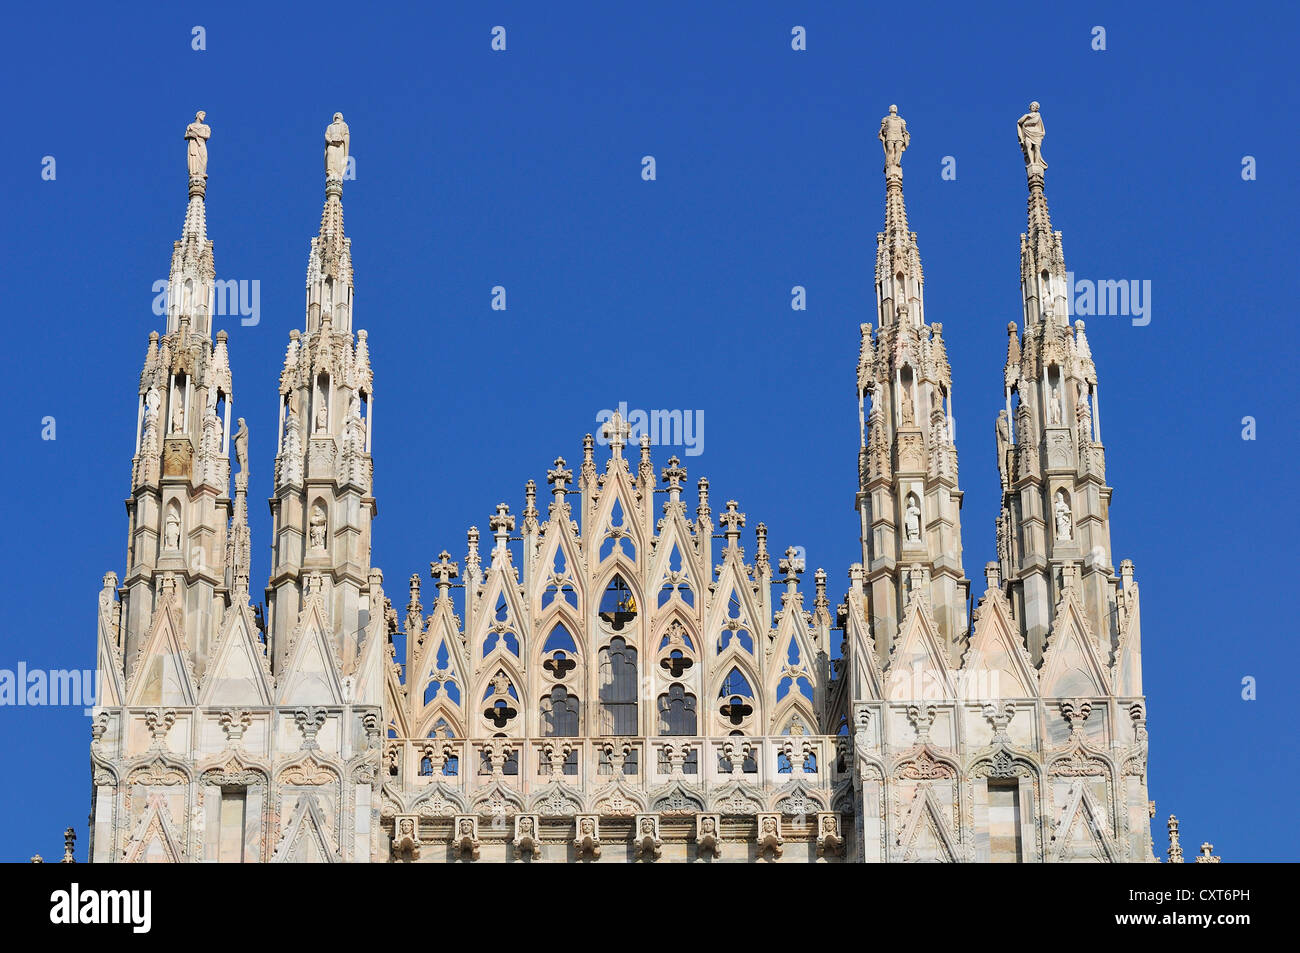 Milan Cathedral, Milan, Lombardy, Italy, Europe - Stock Image